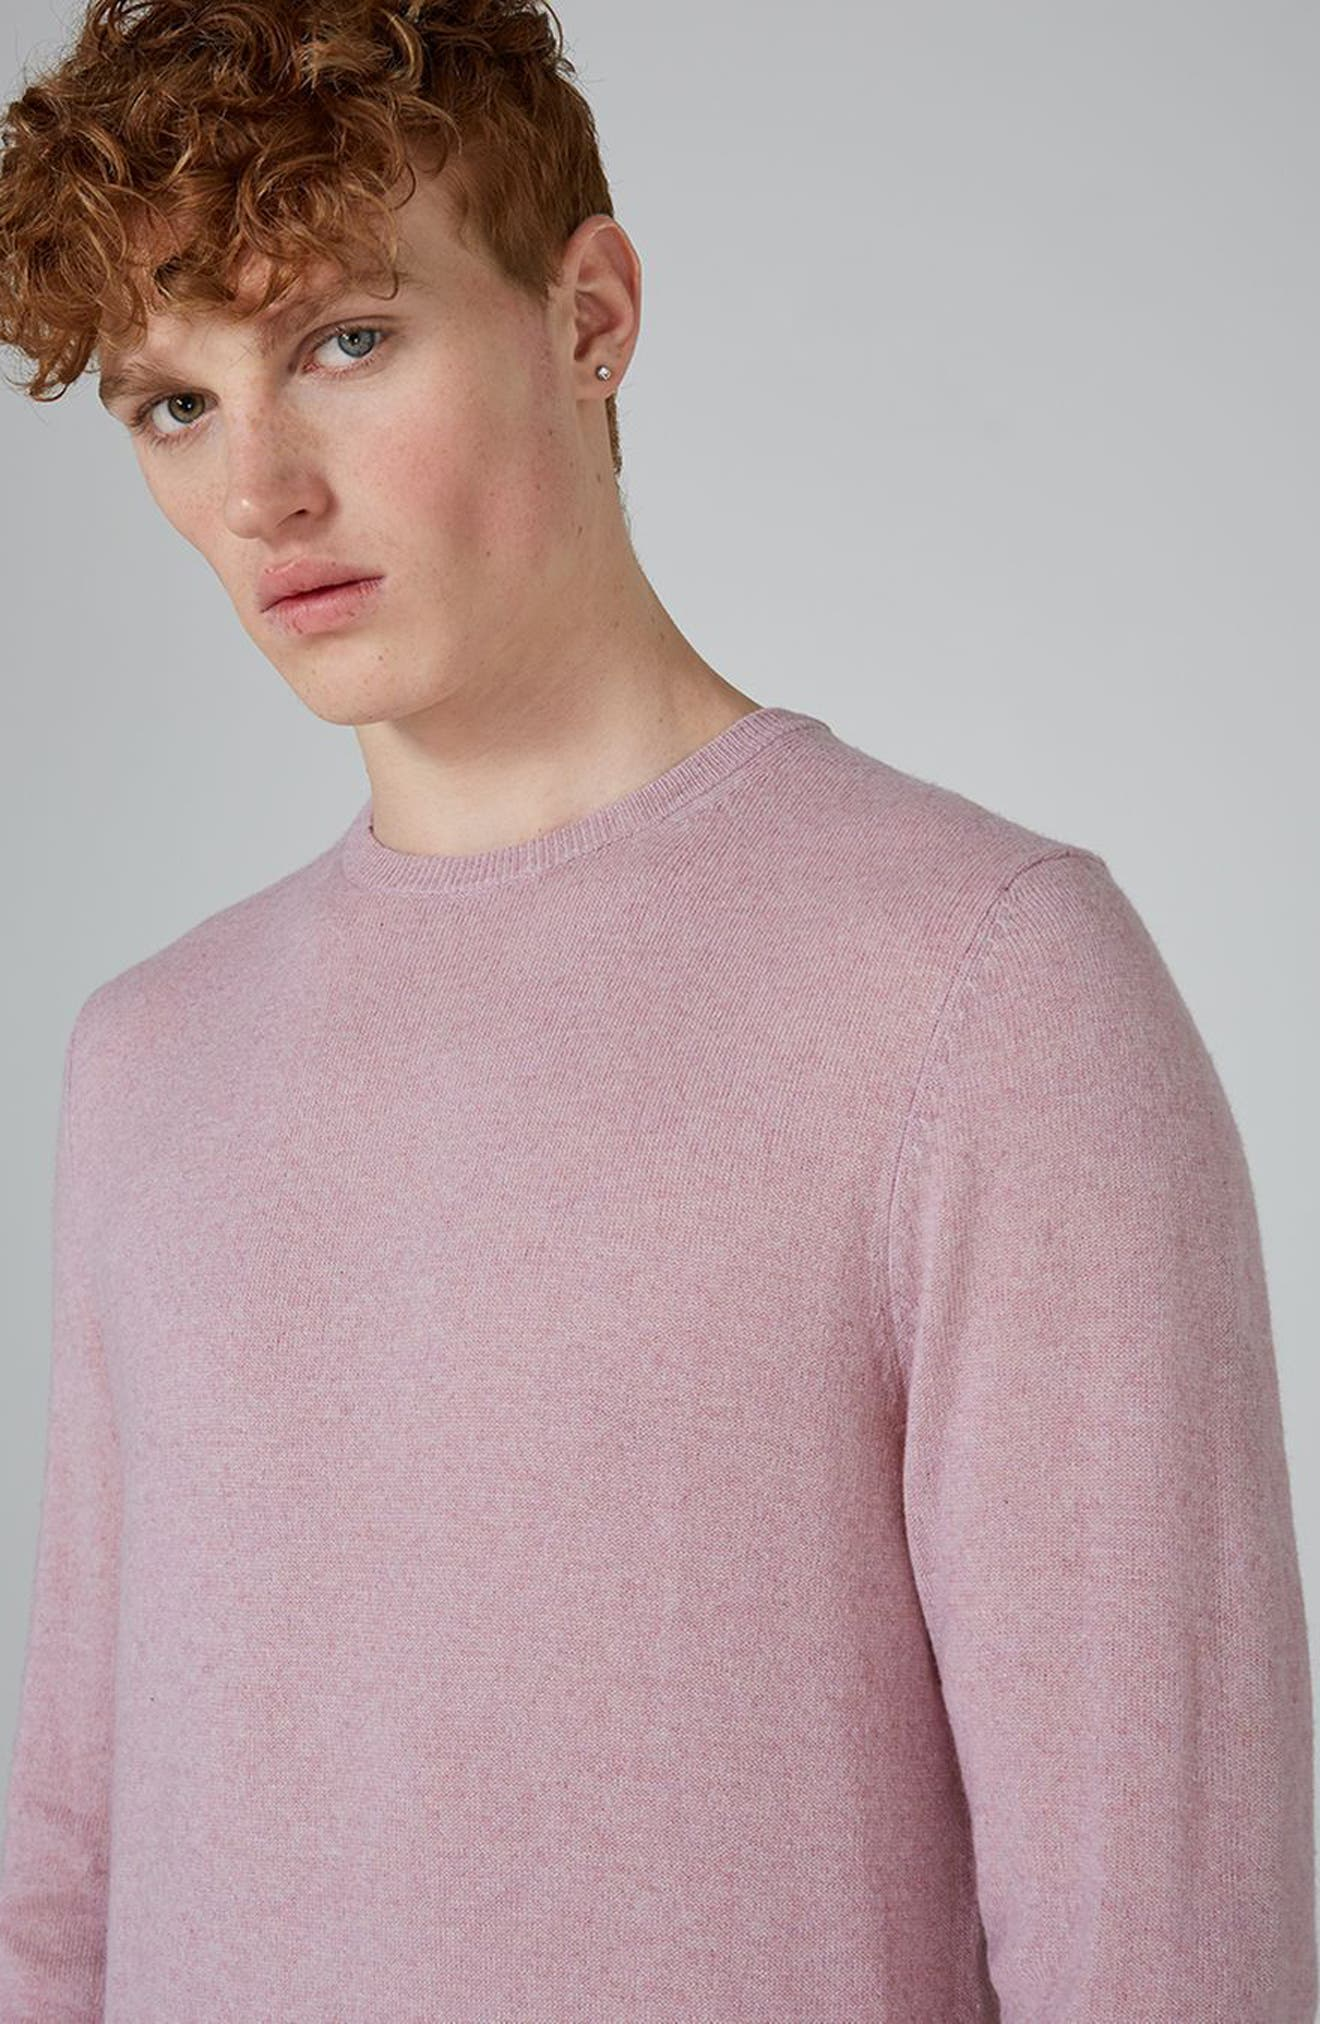 Crewneck Sweater,                             Alternate thumbnail 3, color,                             Pink